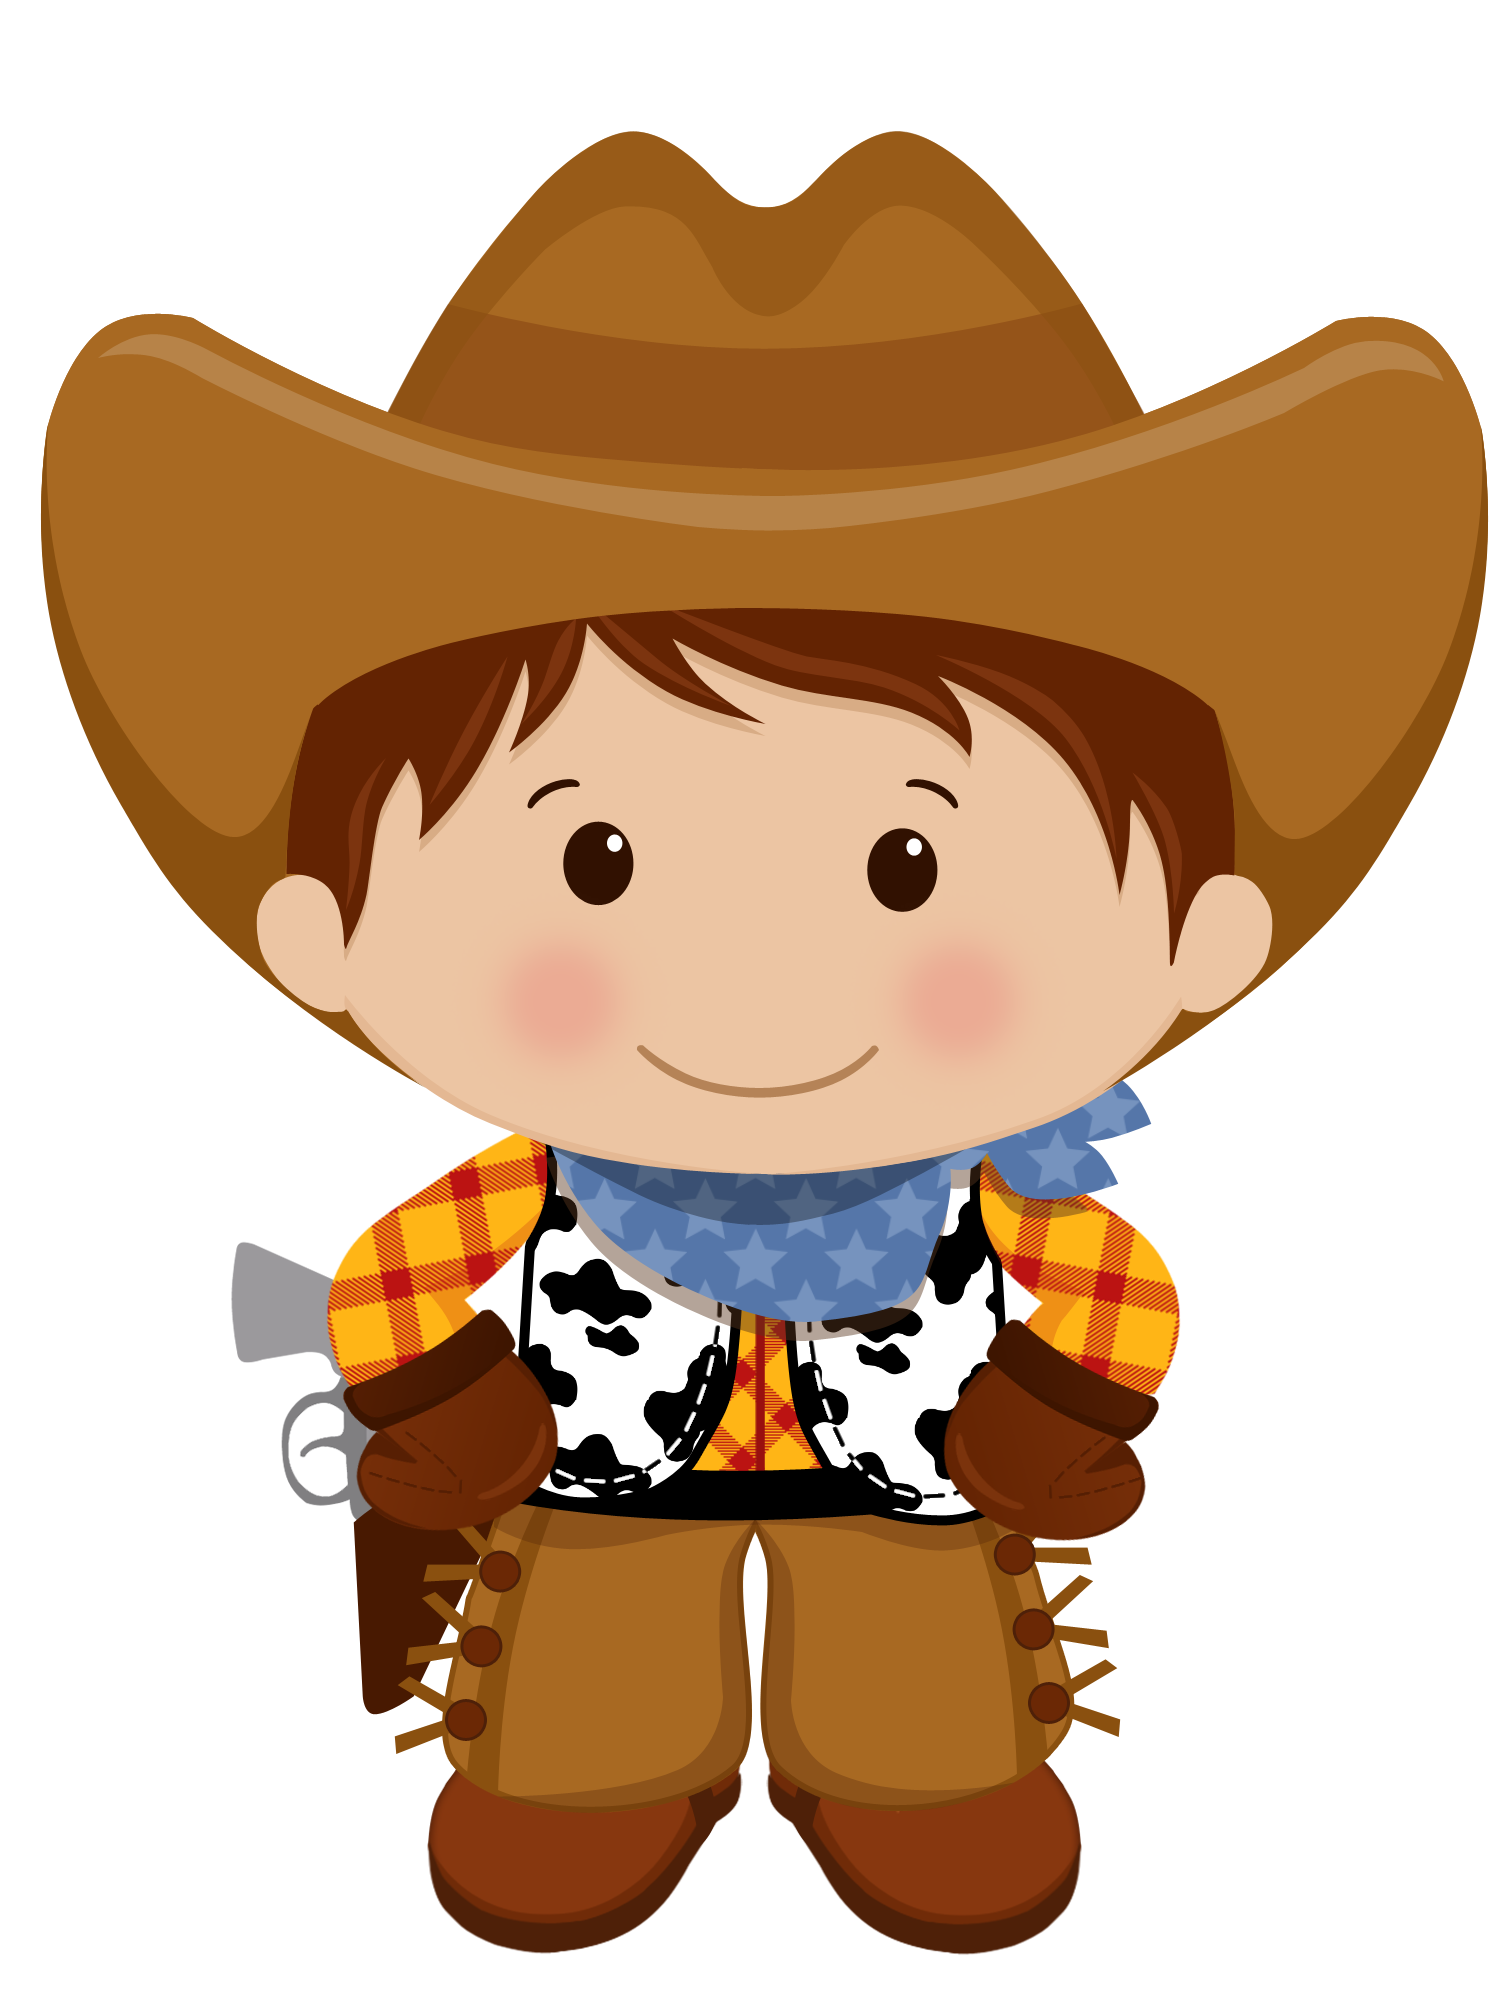 Hats clipart wild west. Brown haired cowboy vaqueros